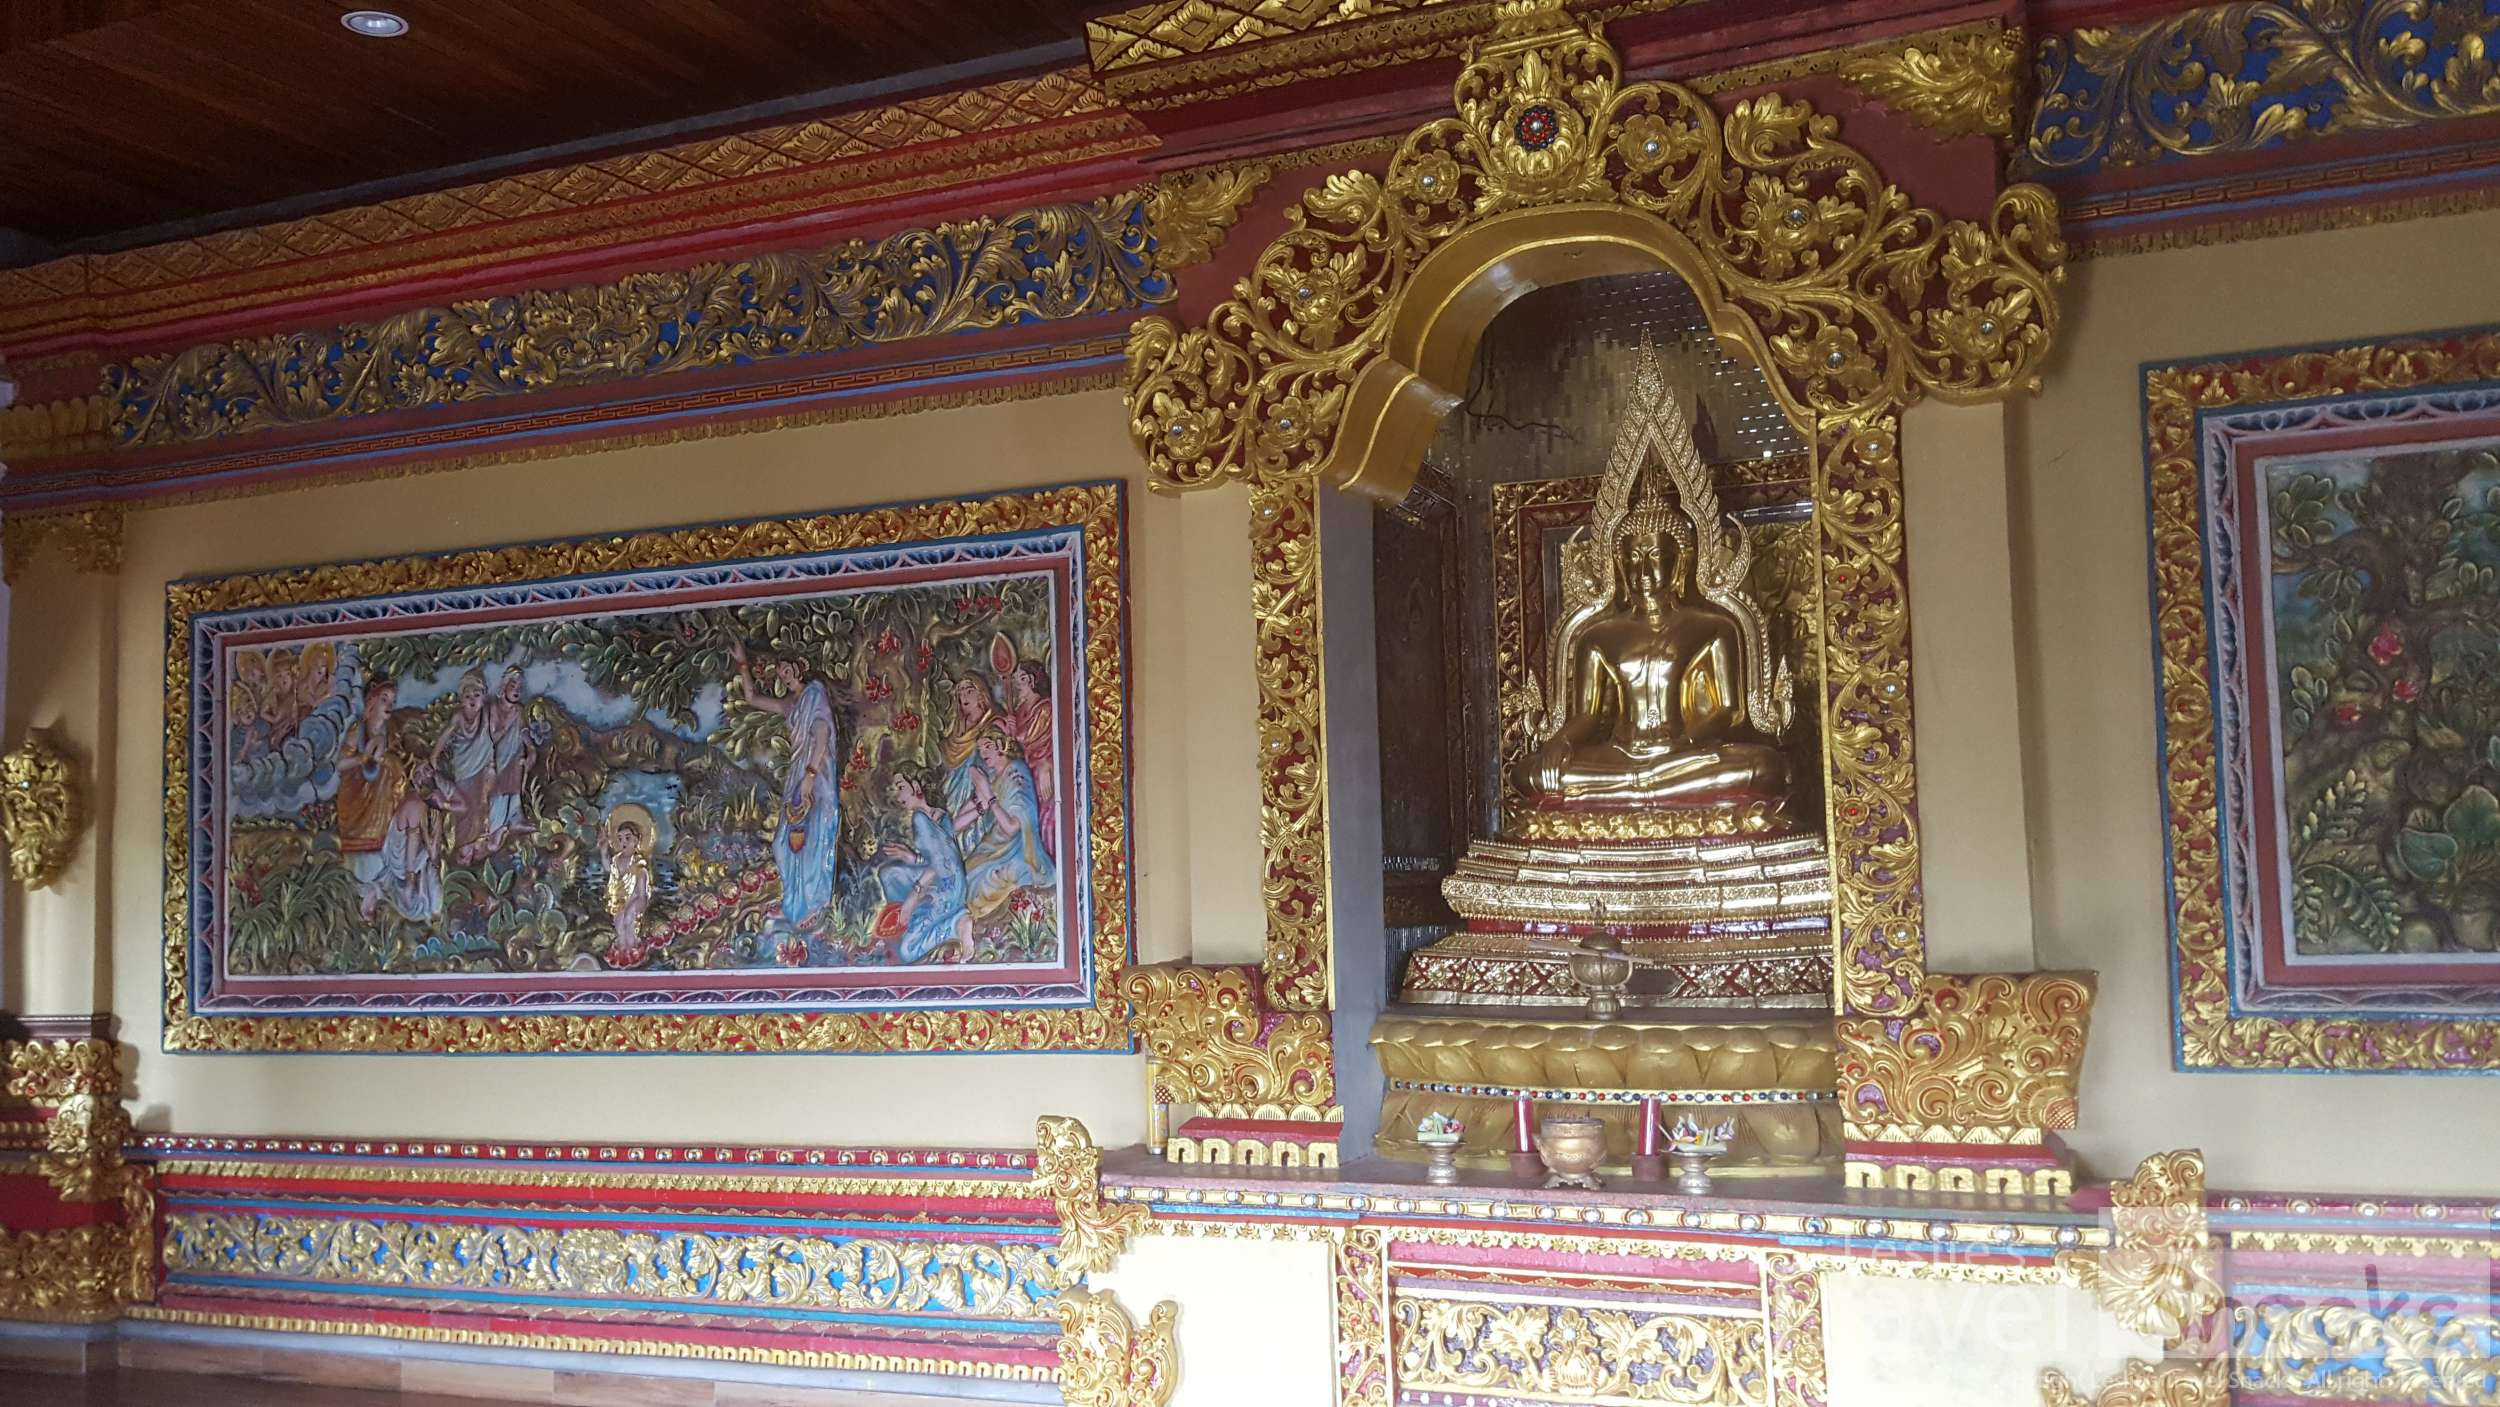 Inside the main meditation room is cool and breezy and has bright relief murals of Prince Siddhartha. It's the most wonderful place to sit and meditate.